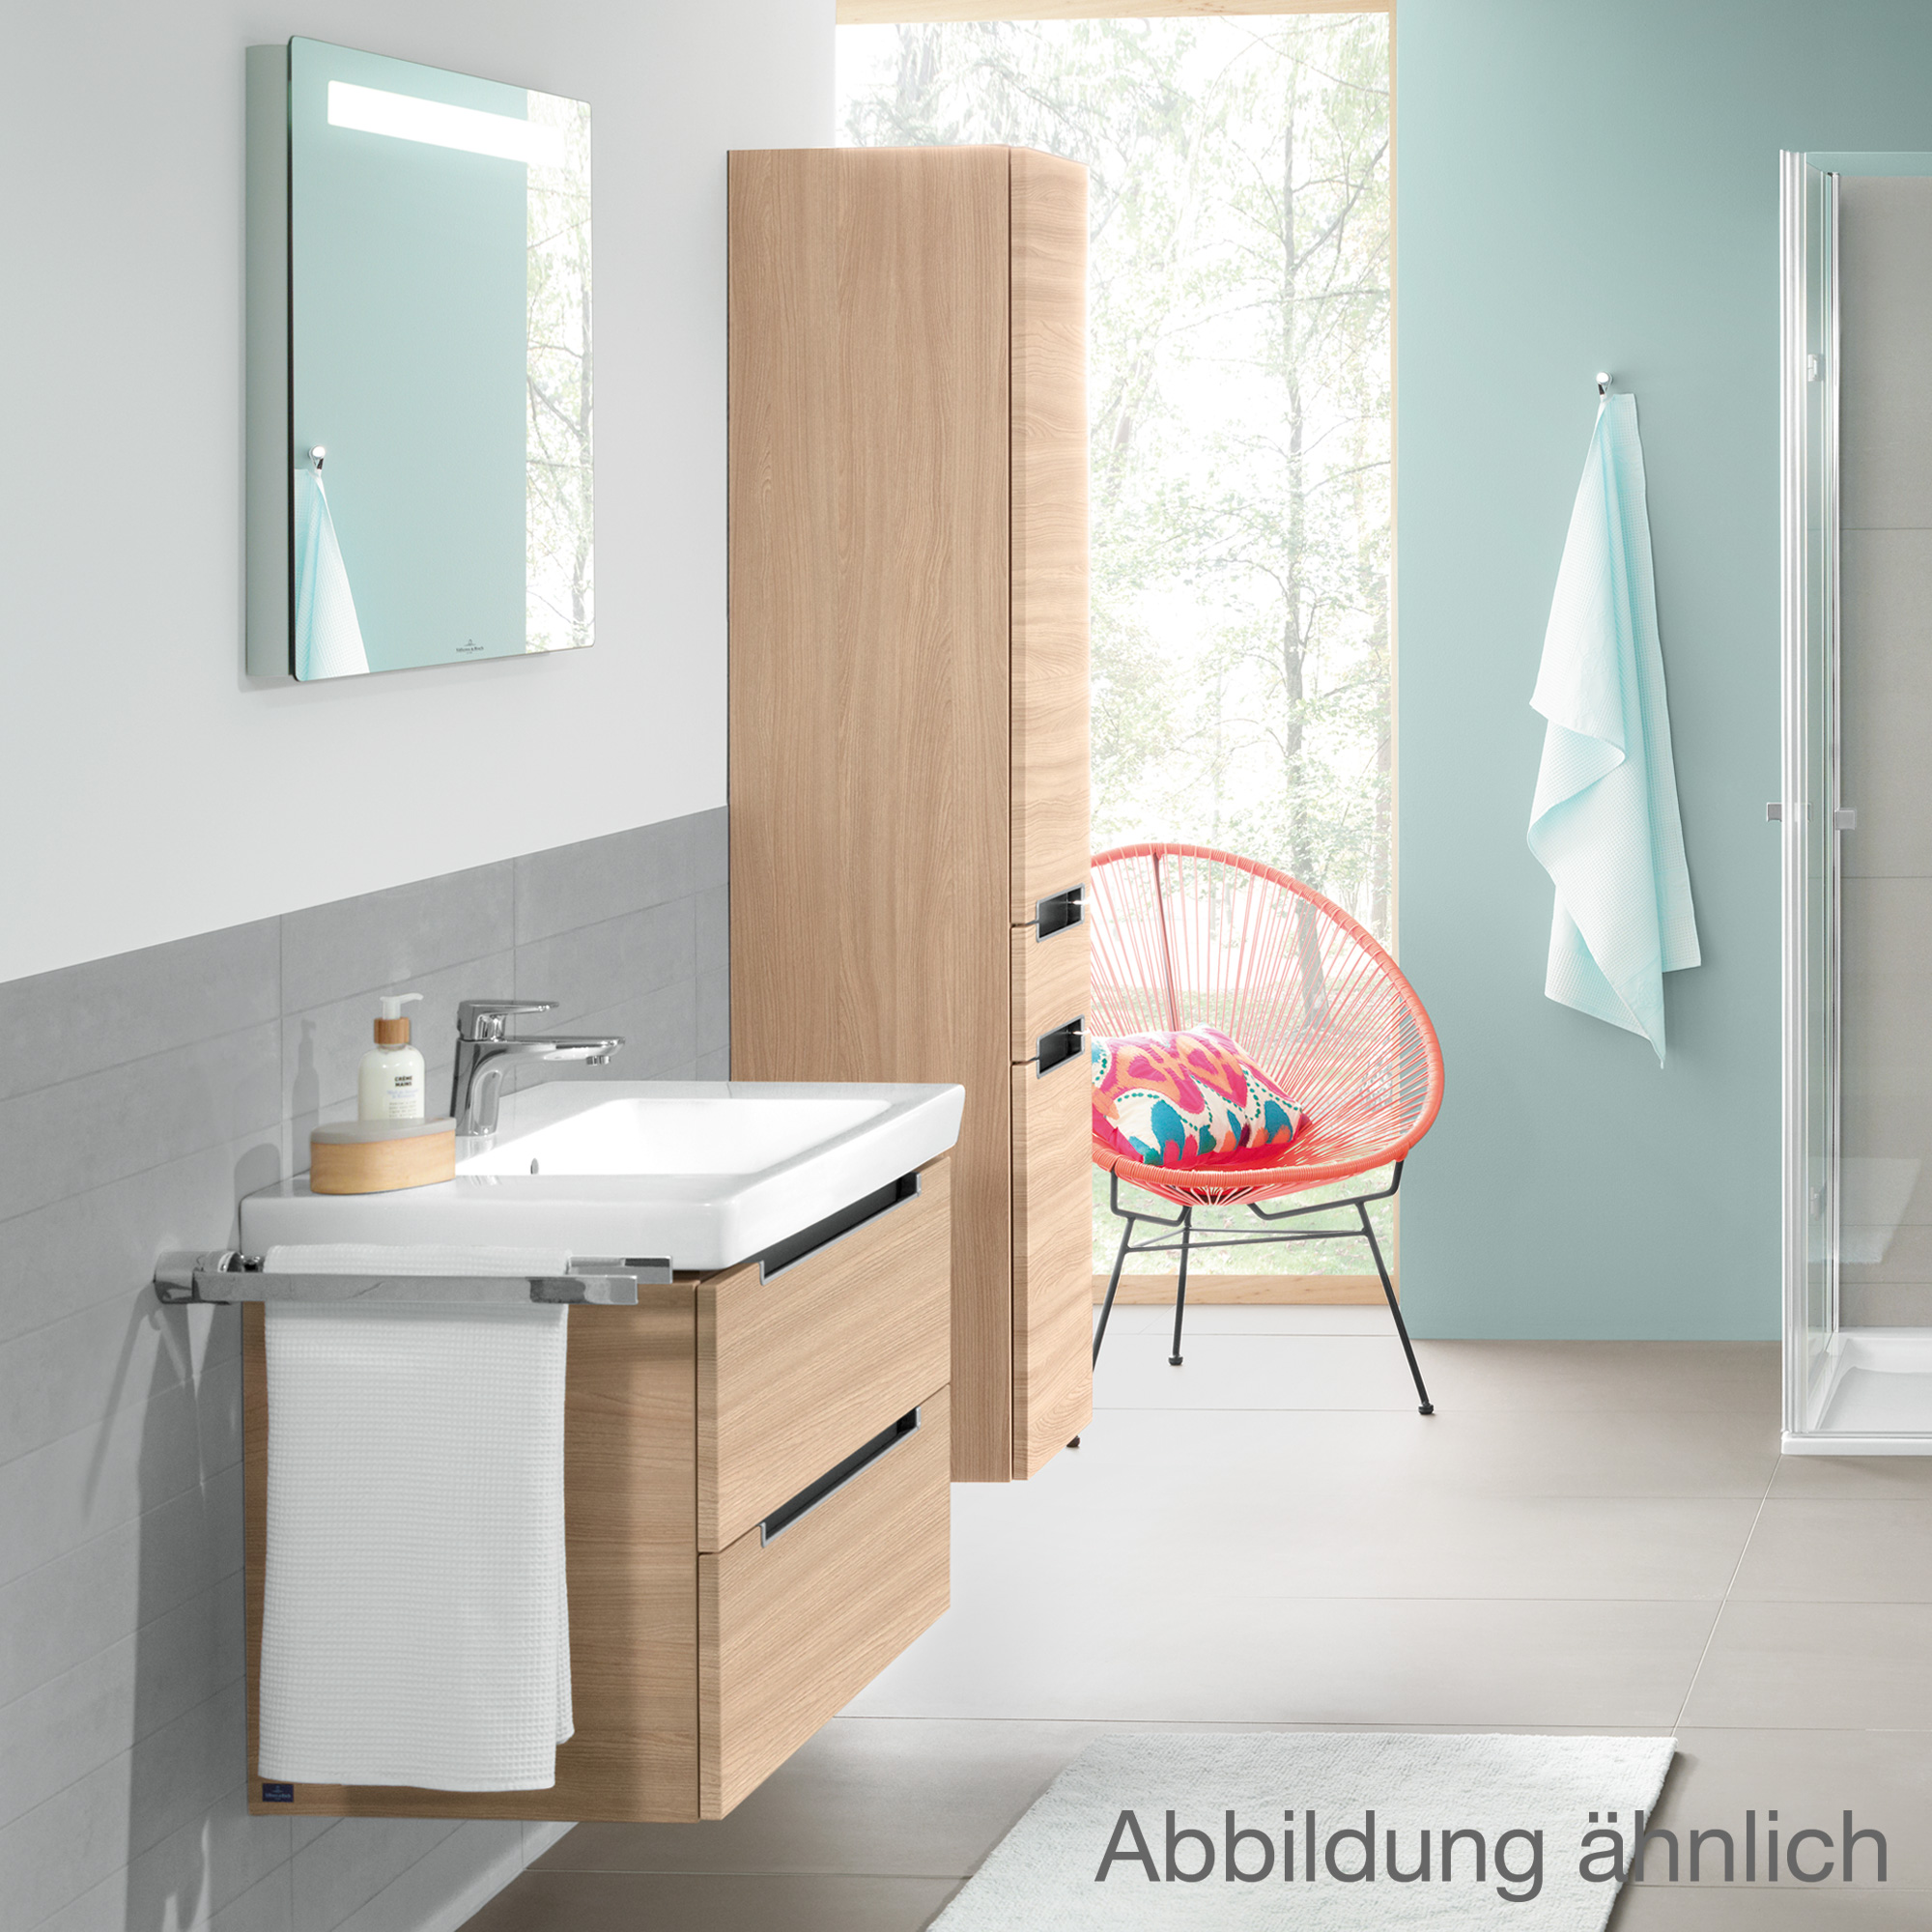 villeroy boch subway 2 0 waschtischunterschrank mit 2 ausz gen santana oak a69700e1 reuter. Black Bedroom Furniture Sets. Home Design Ideas